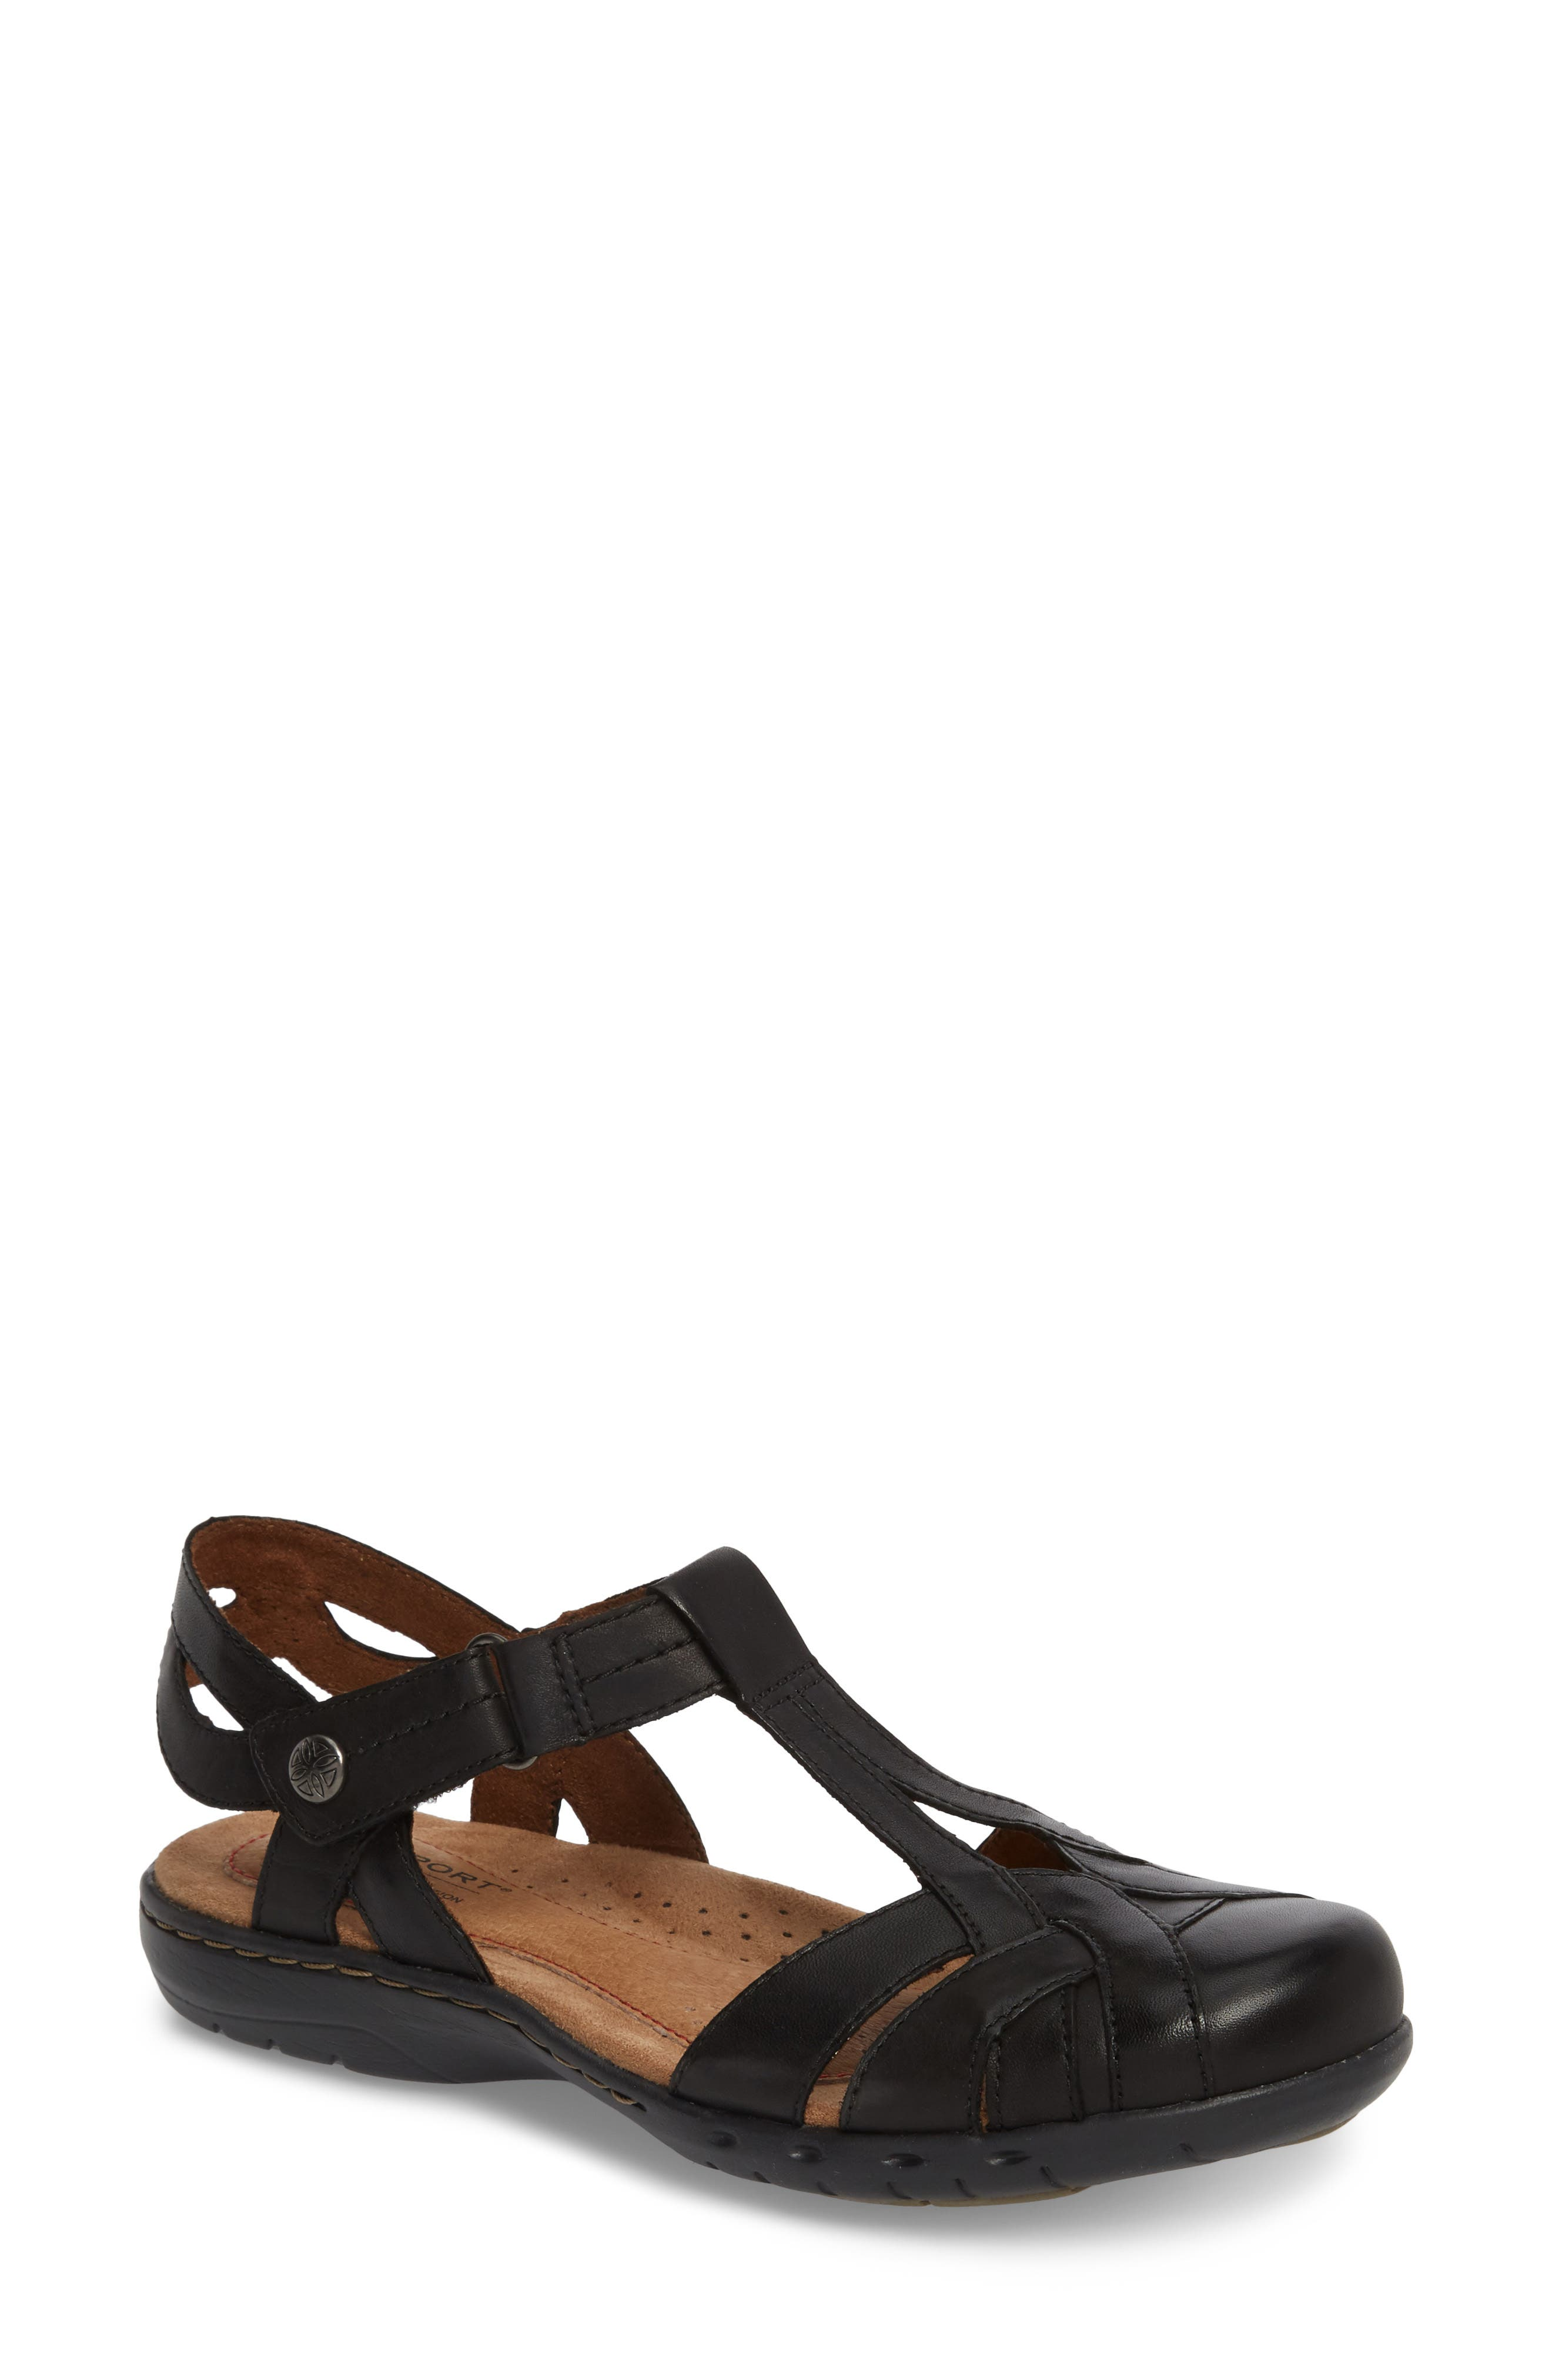 Penefield T-Strap Sandal,                         Main,                         color, BLACK LEATHER